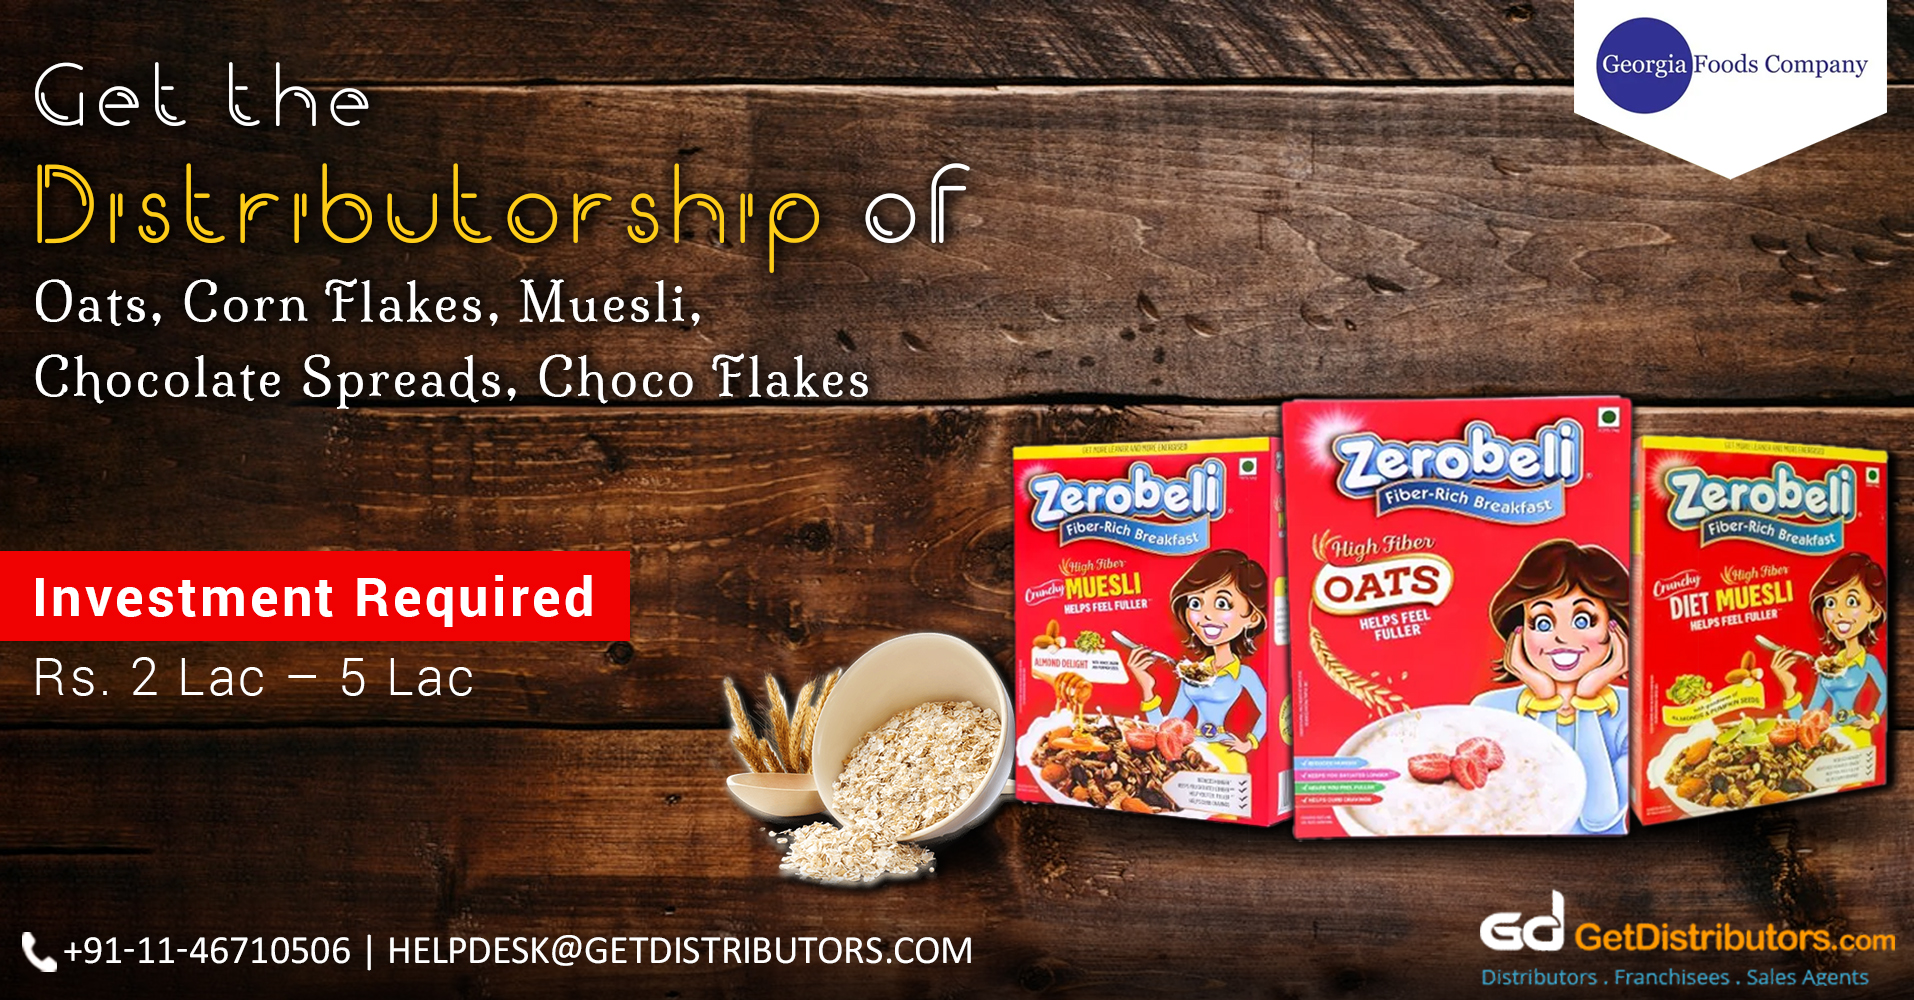 Quality Assured And Tasty Breakfast Cereals Distributorship At Attractive Prices